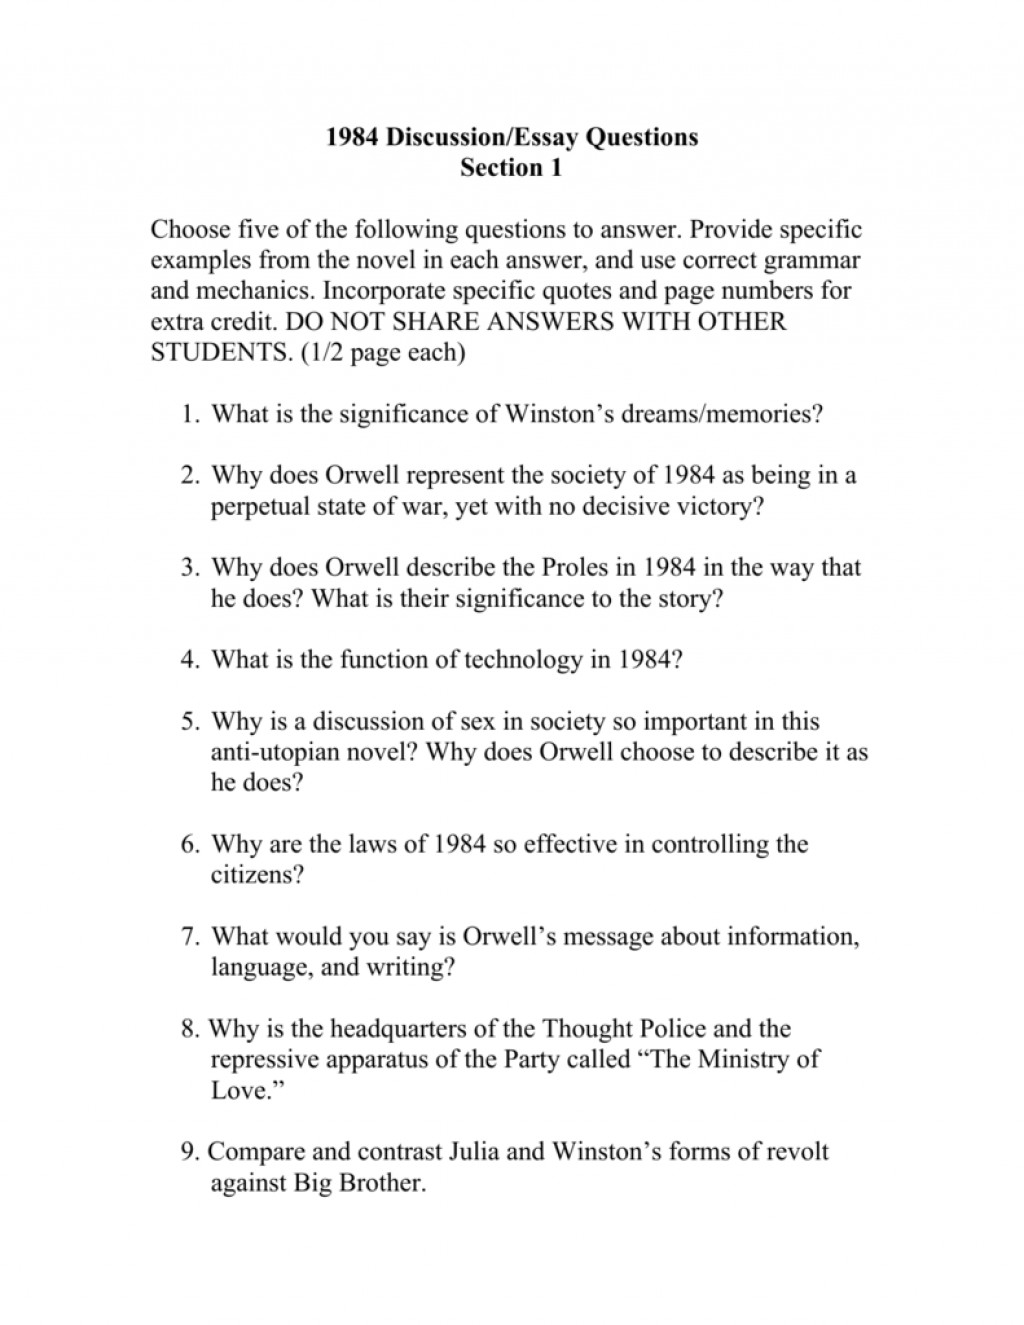 001 Essay Topics 008727389 1 Incredible 1984 Stasiland George Orwell Research Paper Book Questions Large